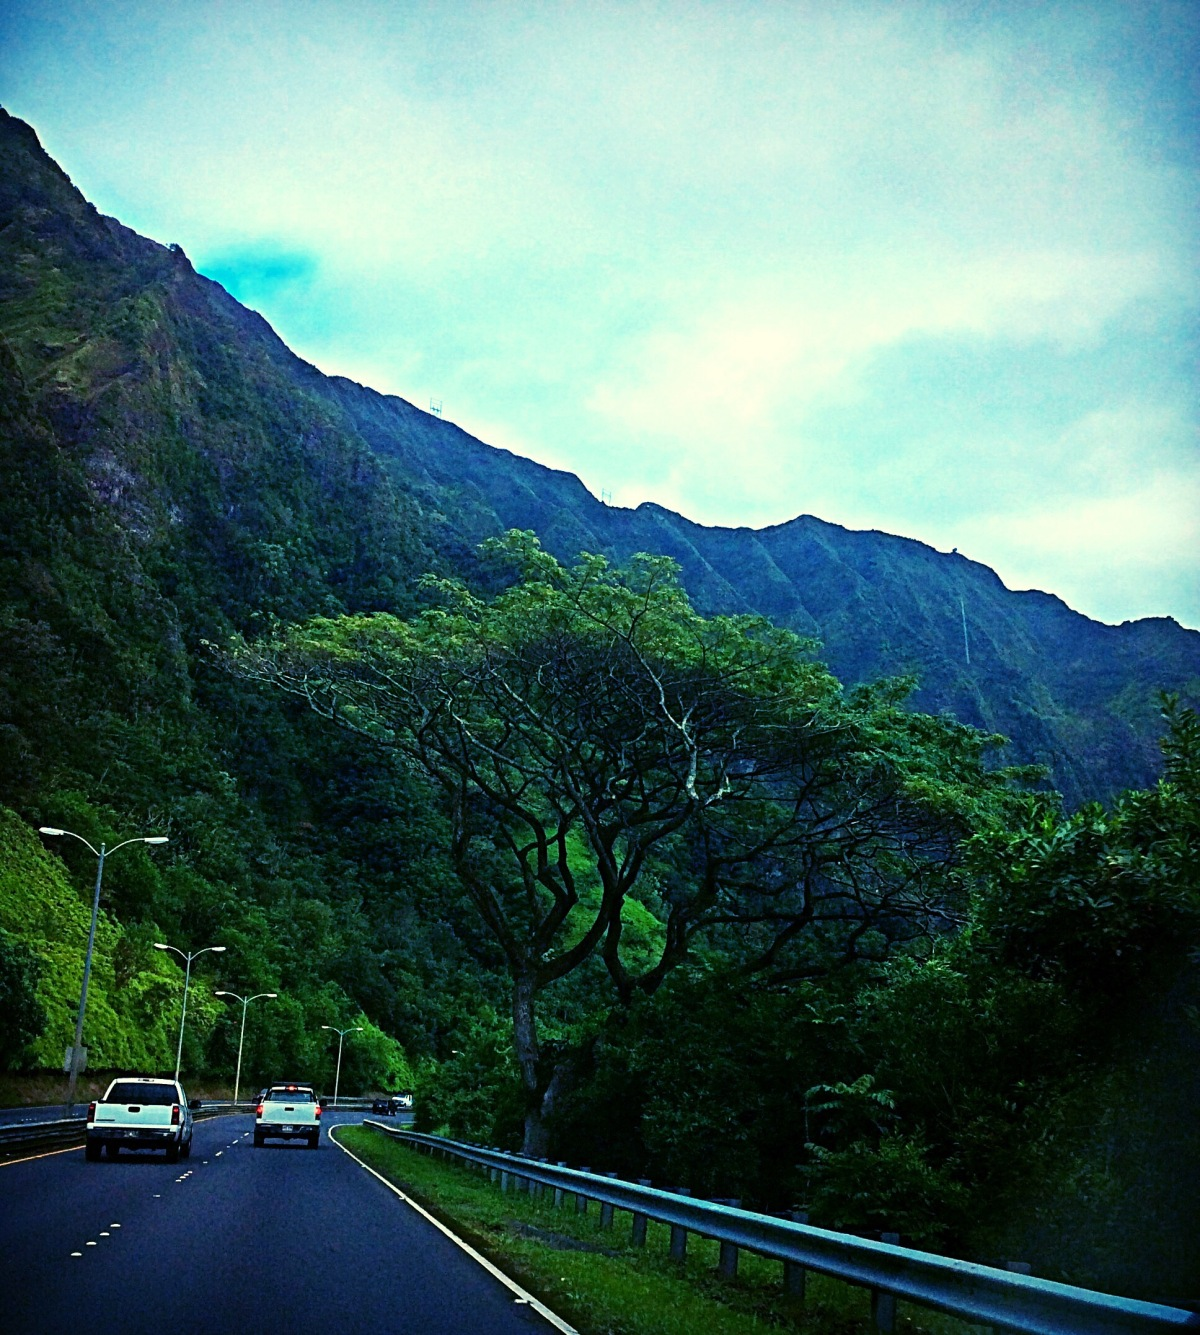 North Shore, Part 1: The Scenic Drive along the Kamehameha Hwy